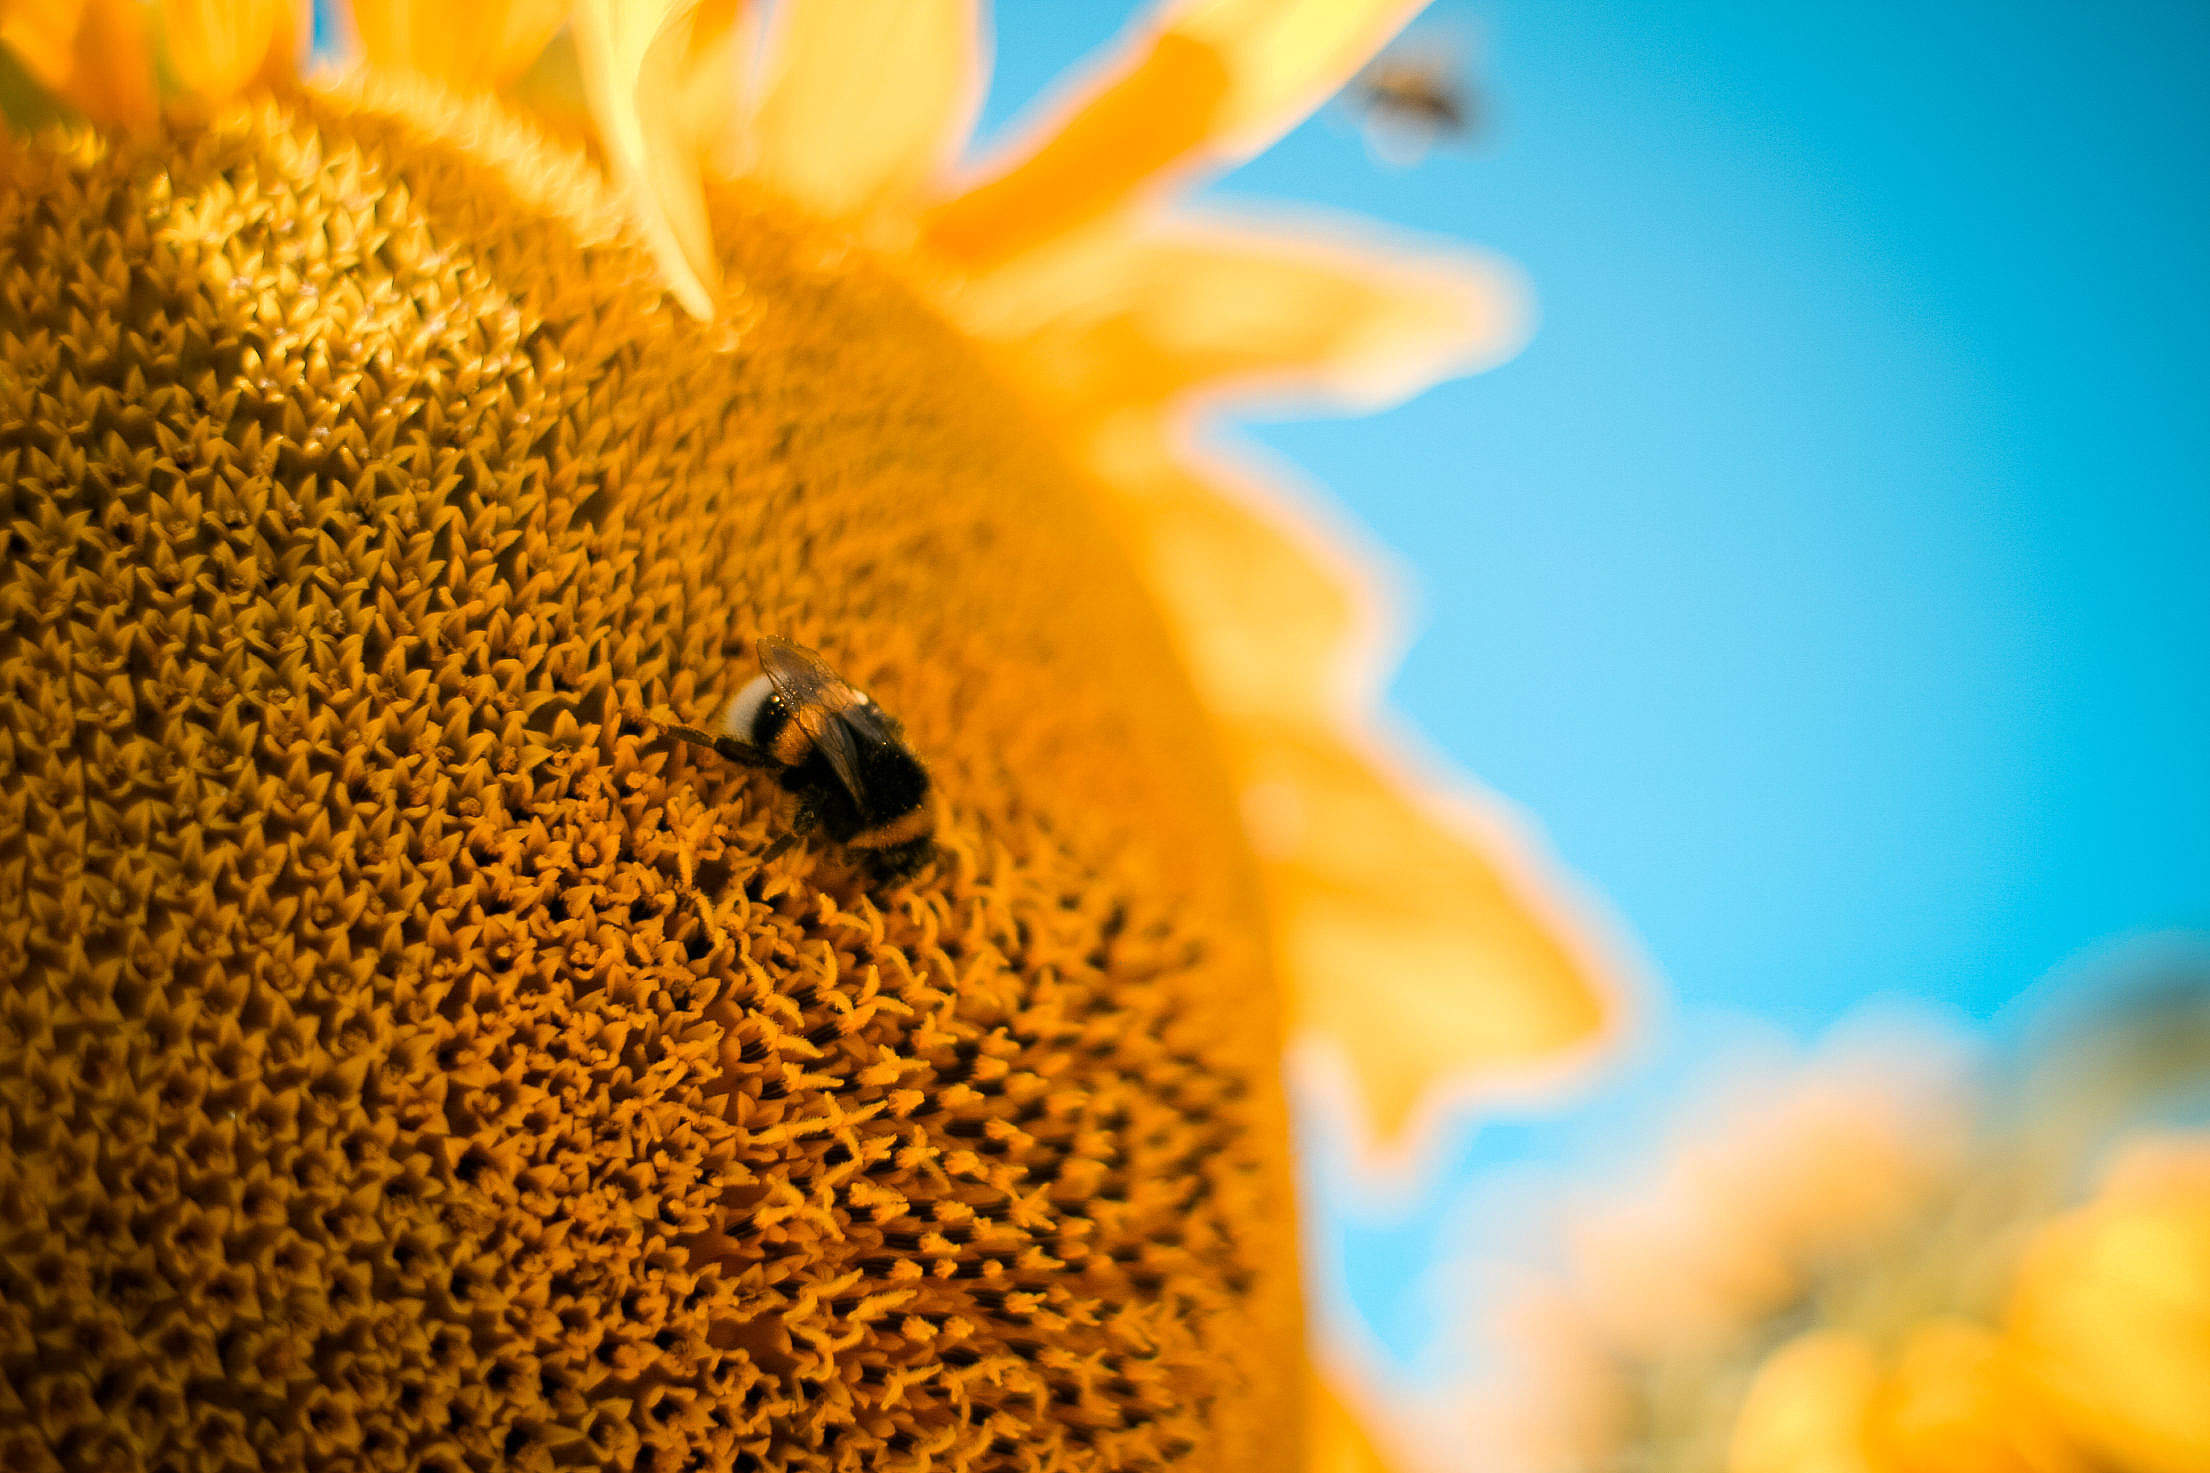 Bumble-Bee on the Sunflower Free Stock Photo